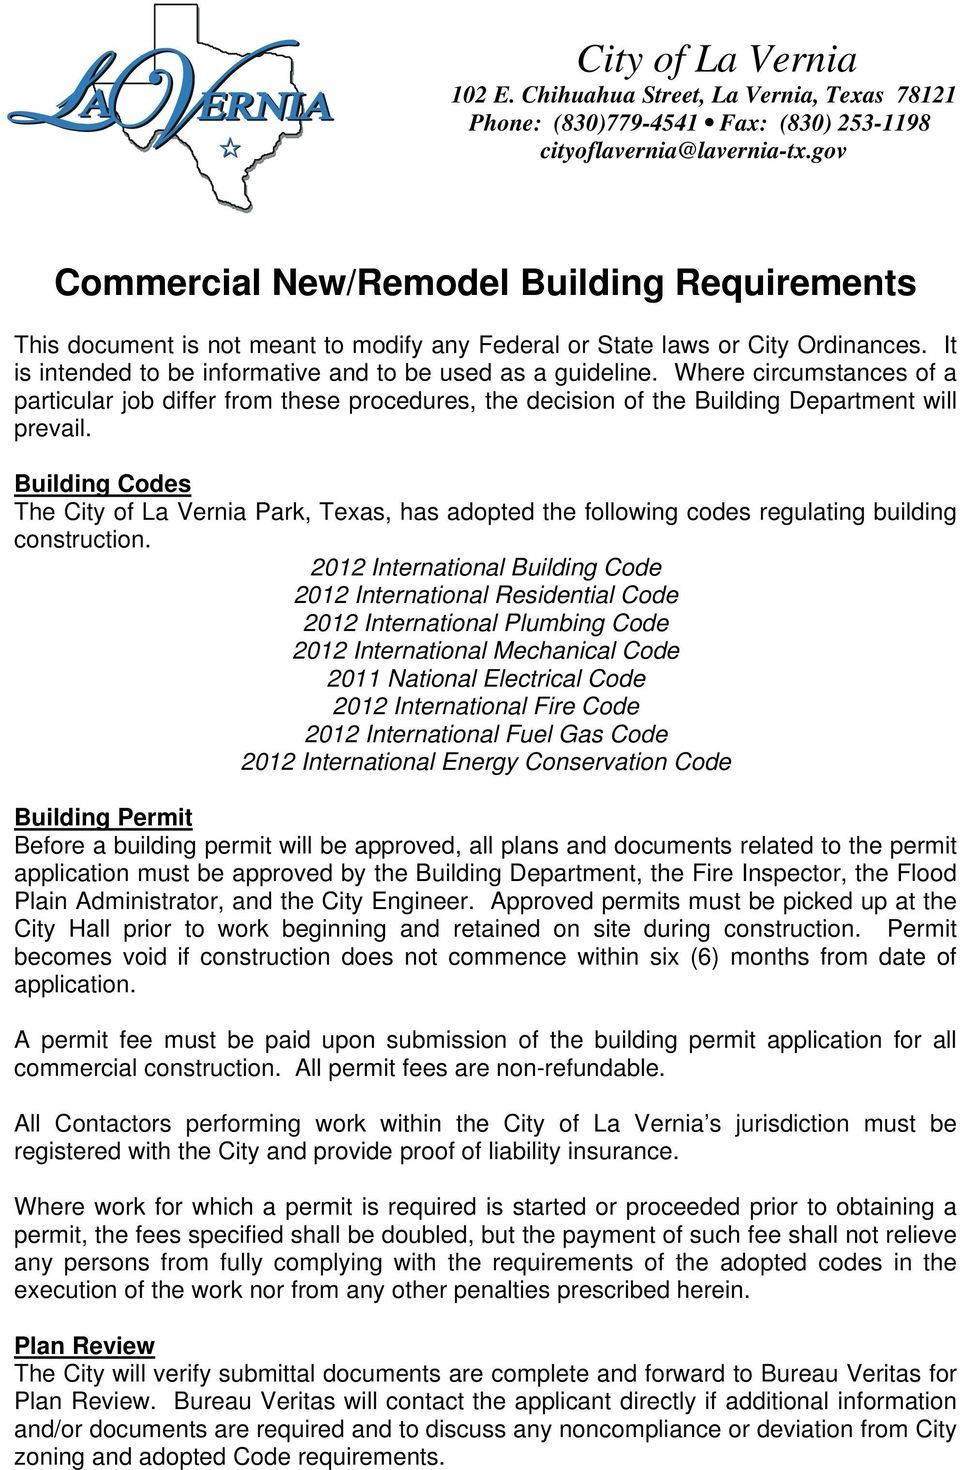 Building Codes The City of La Vernia Park, Texas, has adopted the following codes regulating building construction.